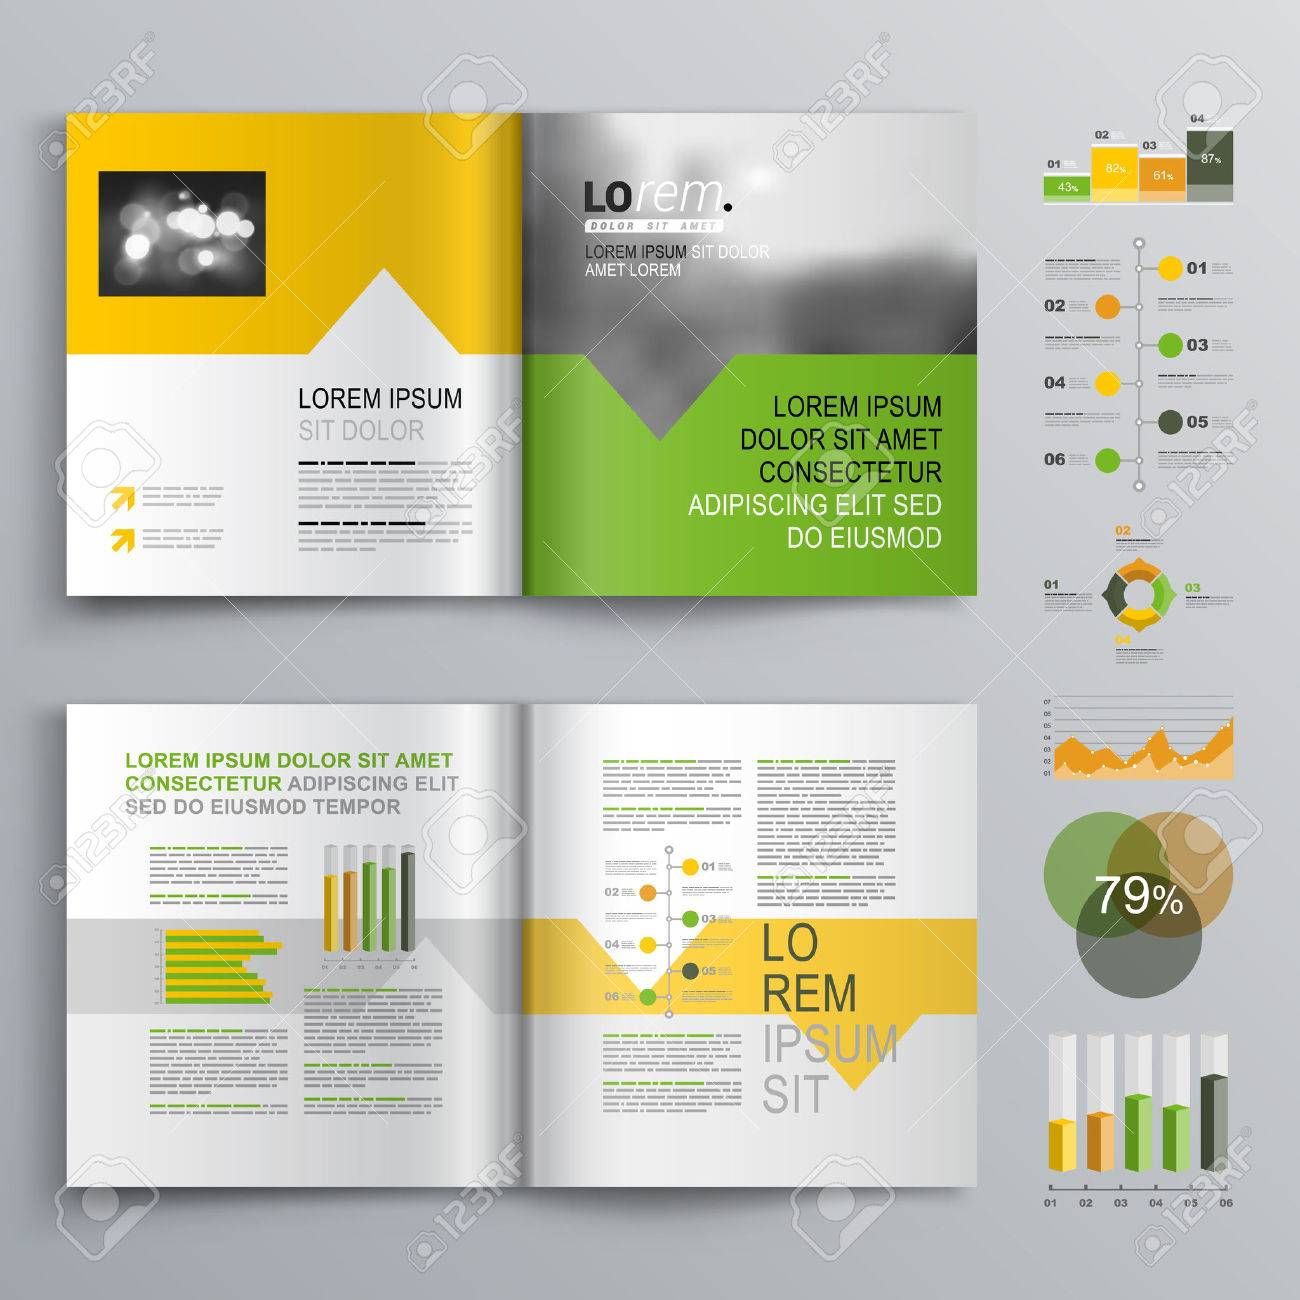 White Brochure Template Design With Green Orange And Yellow - Brochure templates design